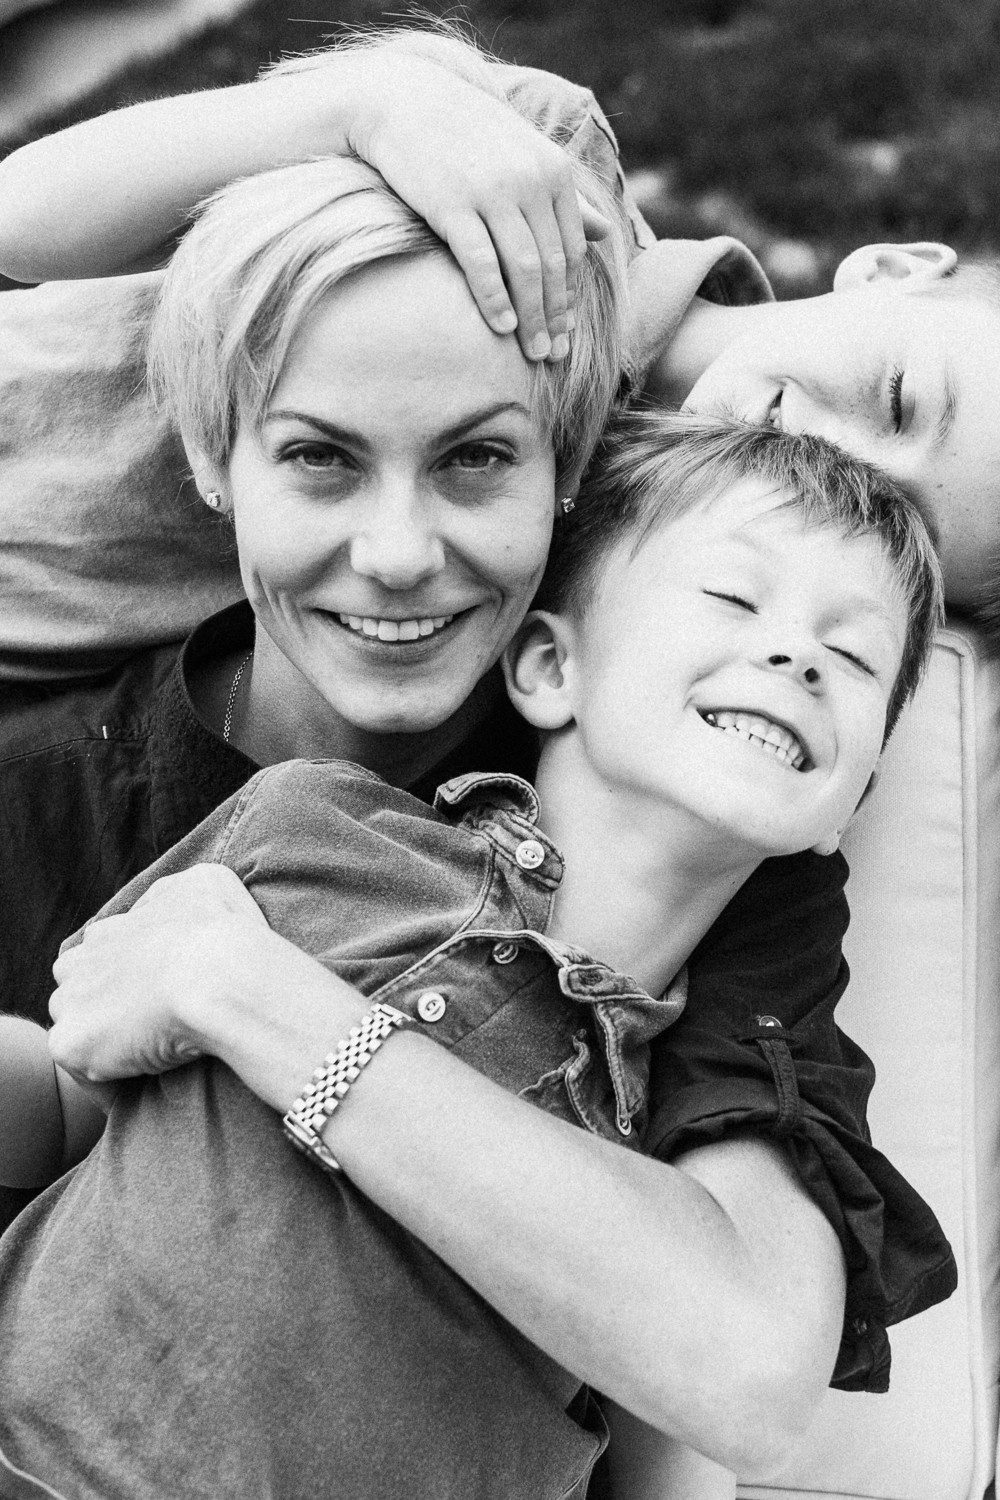 candid-black-and-white-photograph-of-mom-and-sons-in-backyard-at-in-home-photo-session-slc-utah